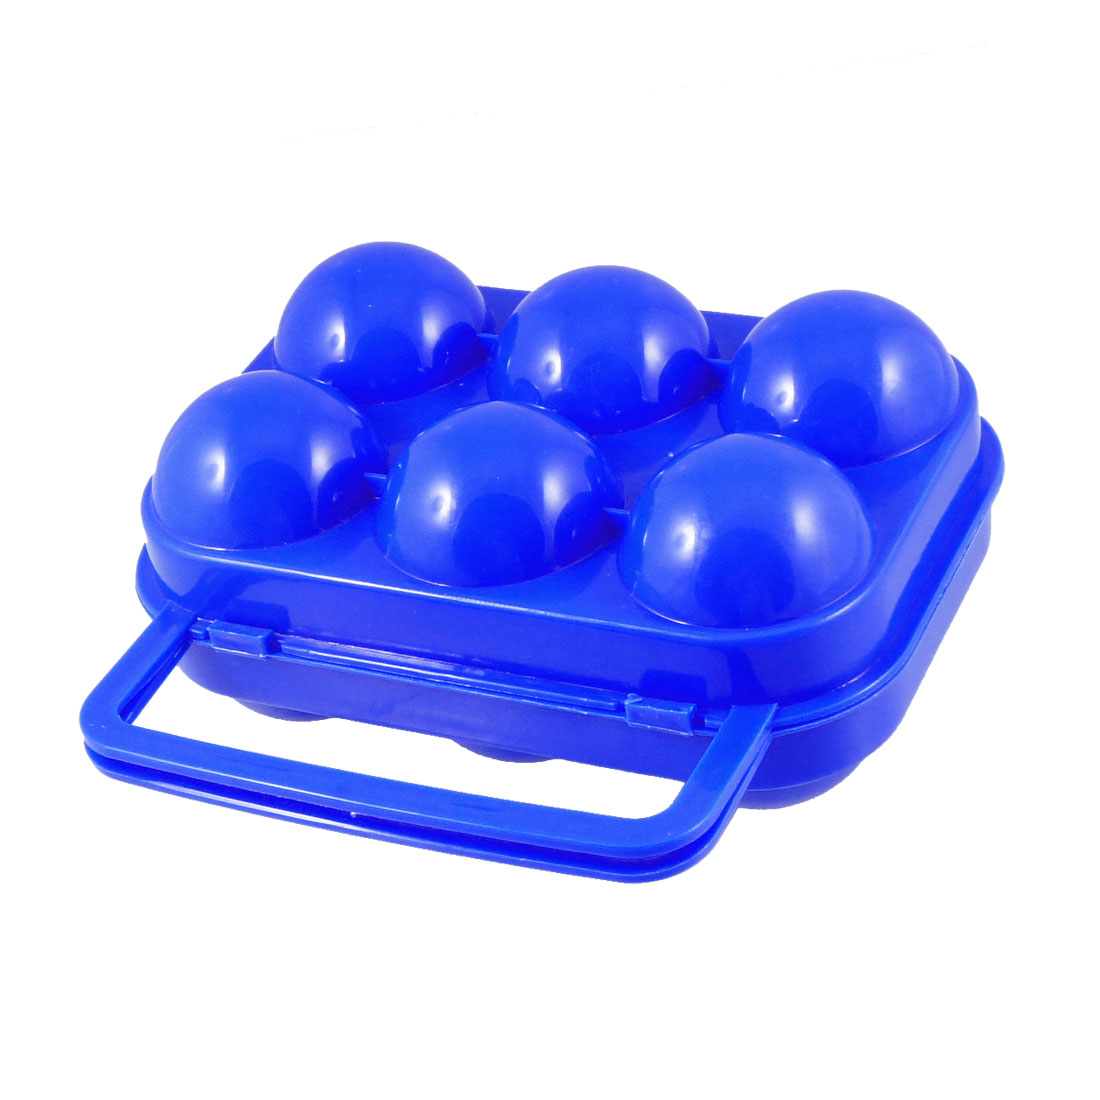 Blue Outdoor Picnic Foldable Plastic Egg Tray Storage Case Box